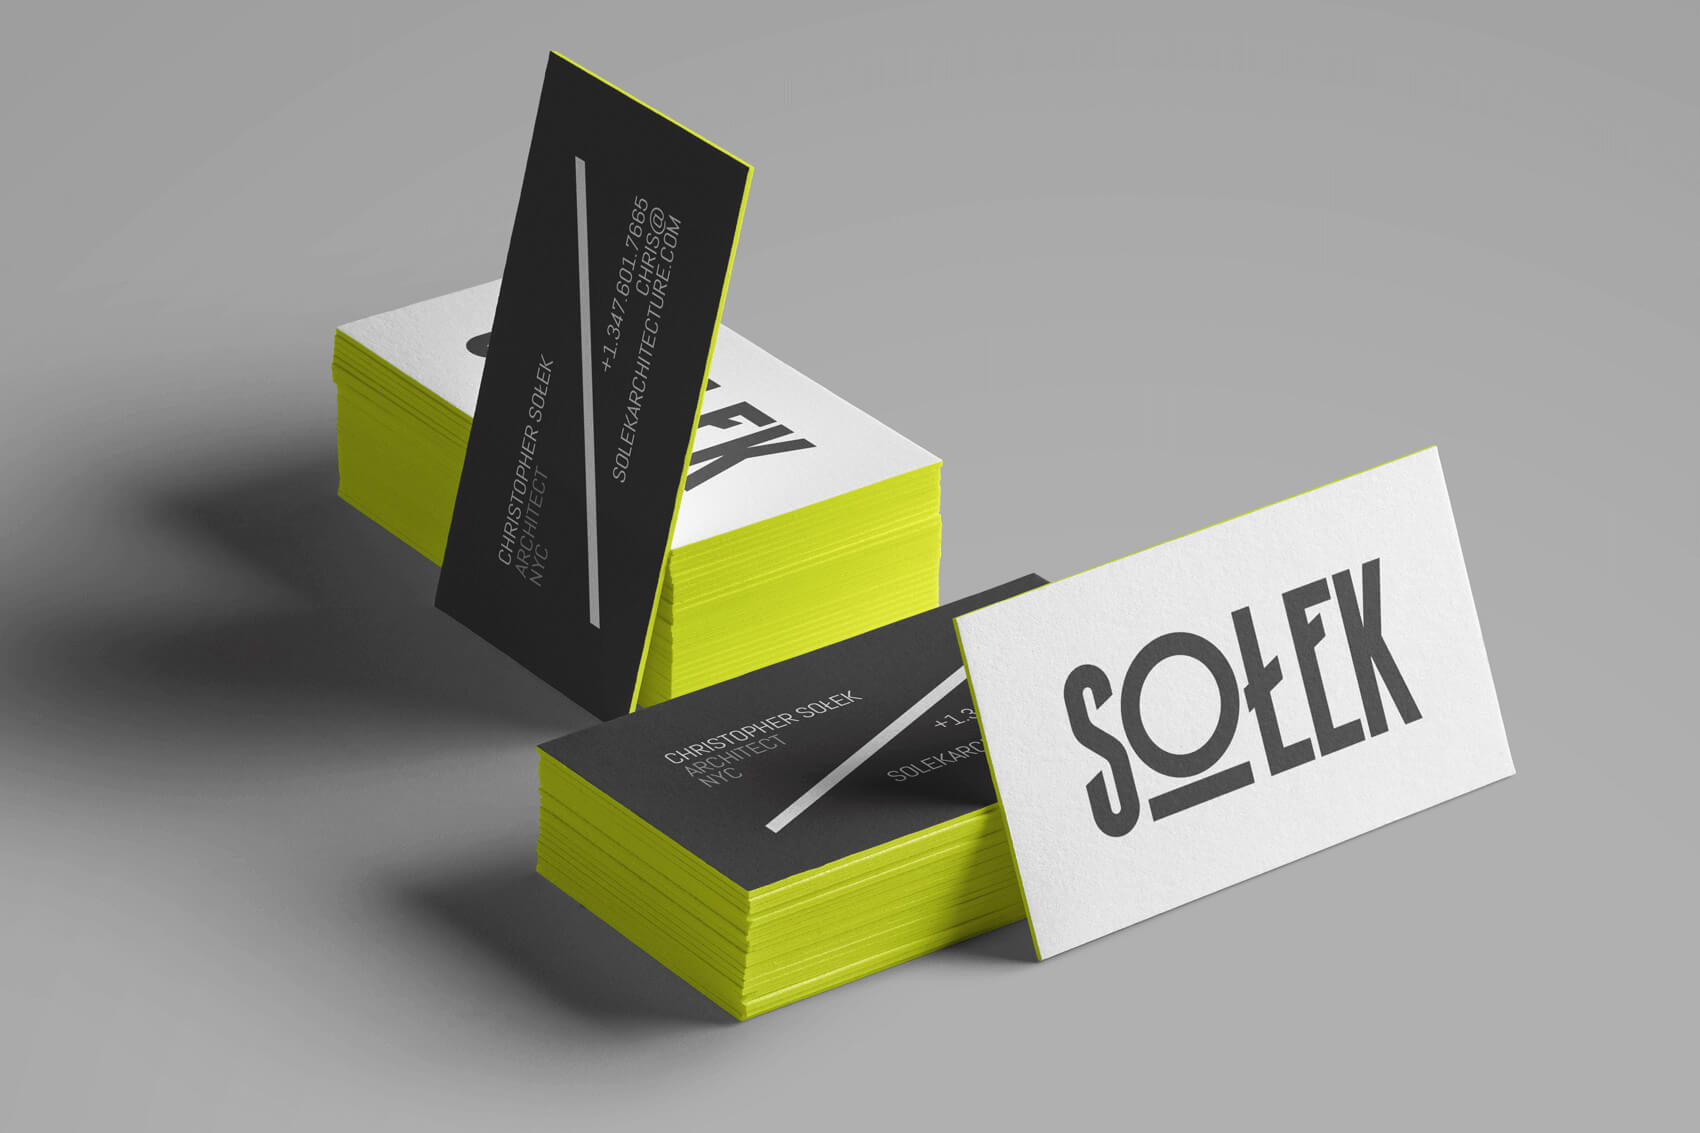 Solek Architecture business cards designed a color punch neon yellow edge.